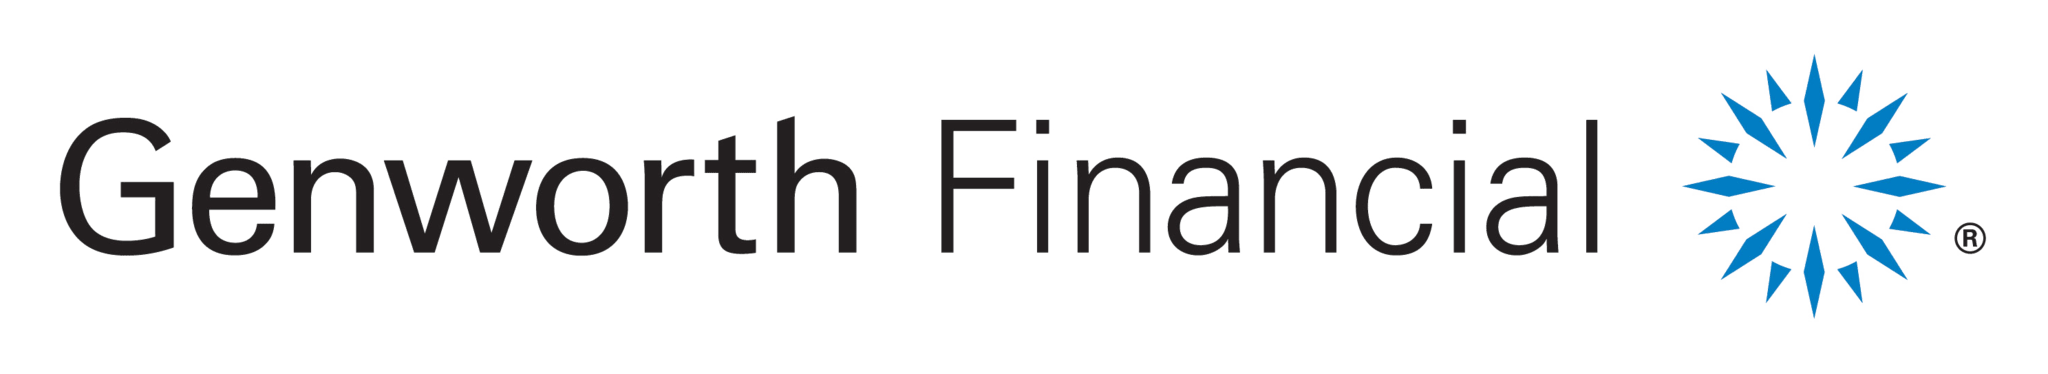 Financial Securities Services First